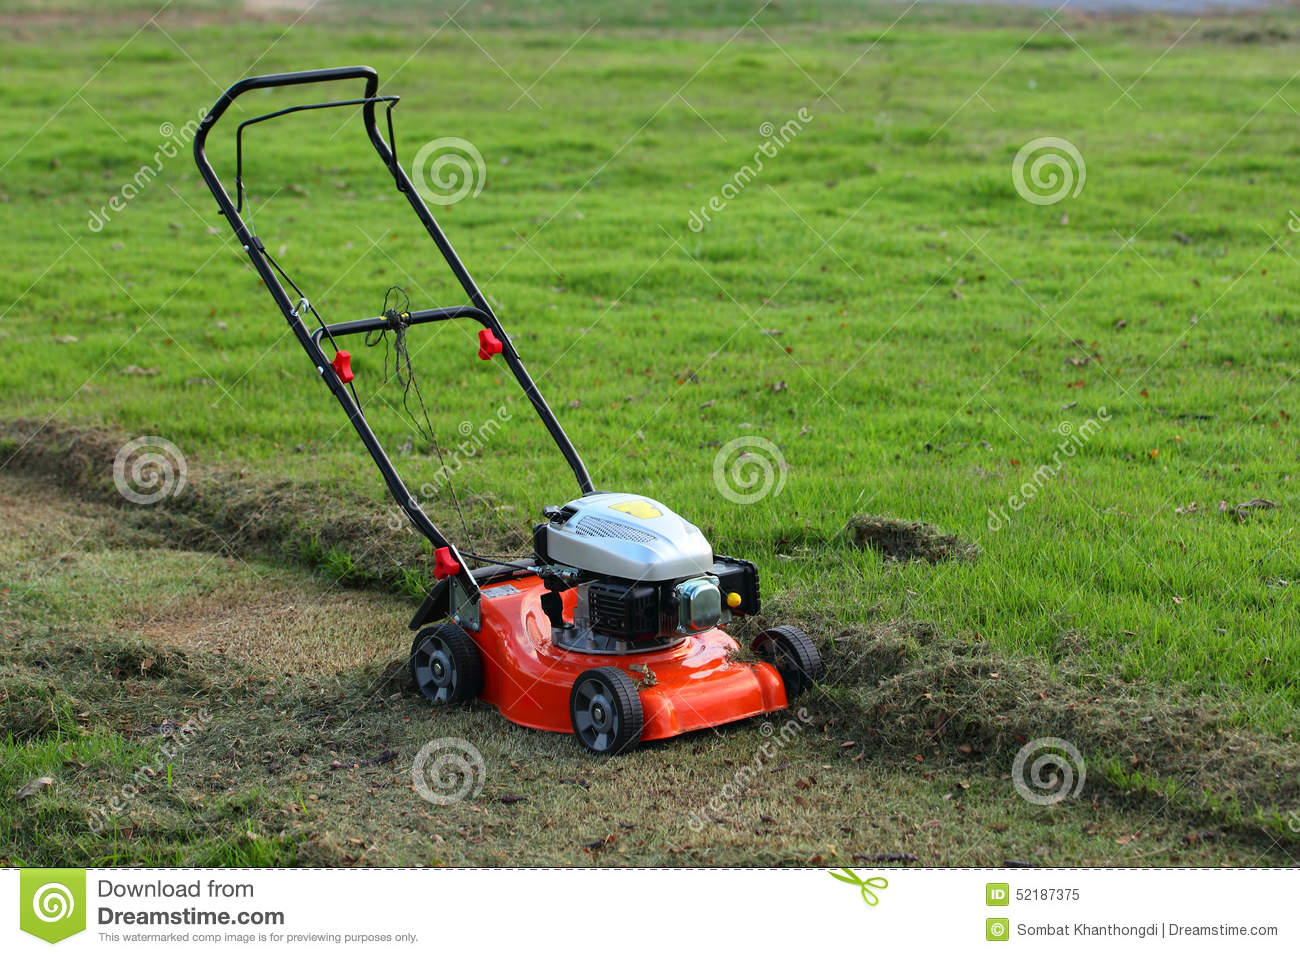 Lawn mower cutting grass stock photo image 52187375 for Lawn mower cutting grass